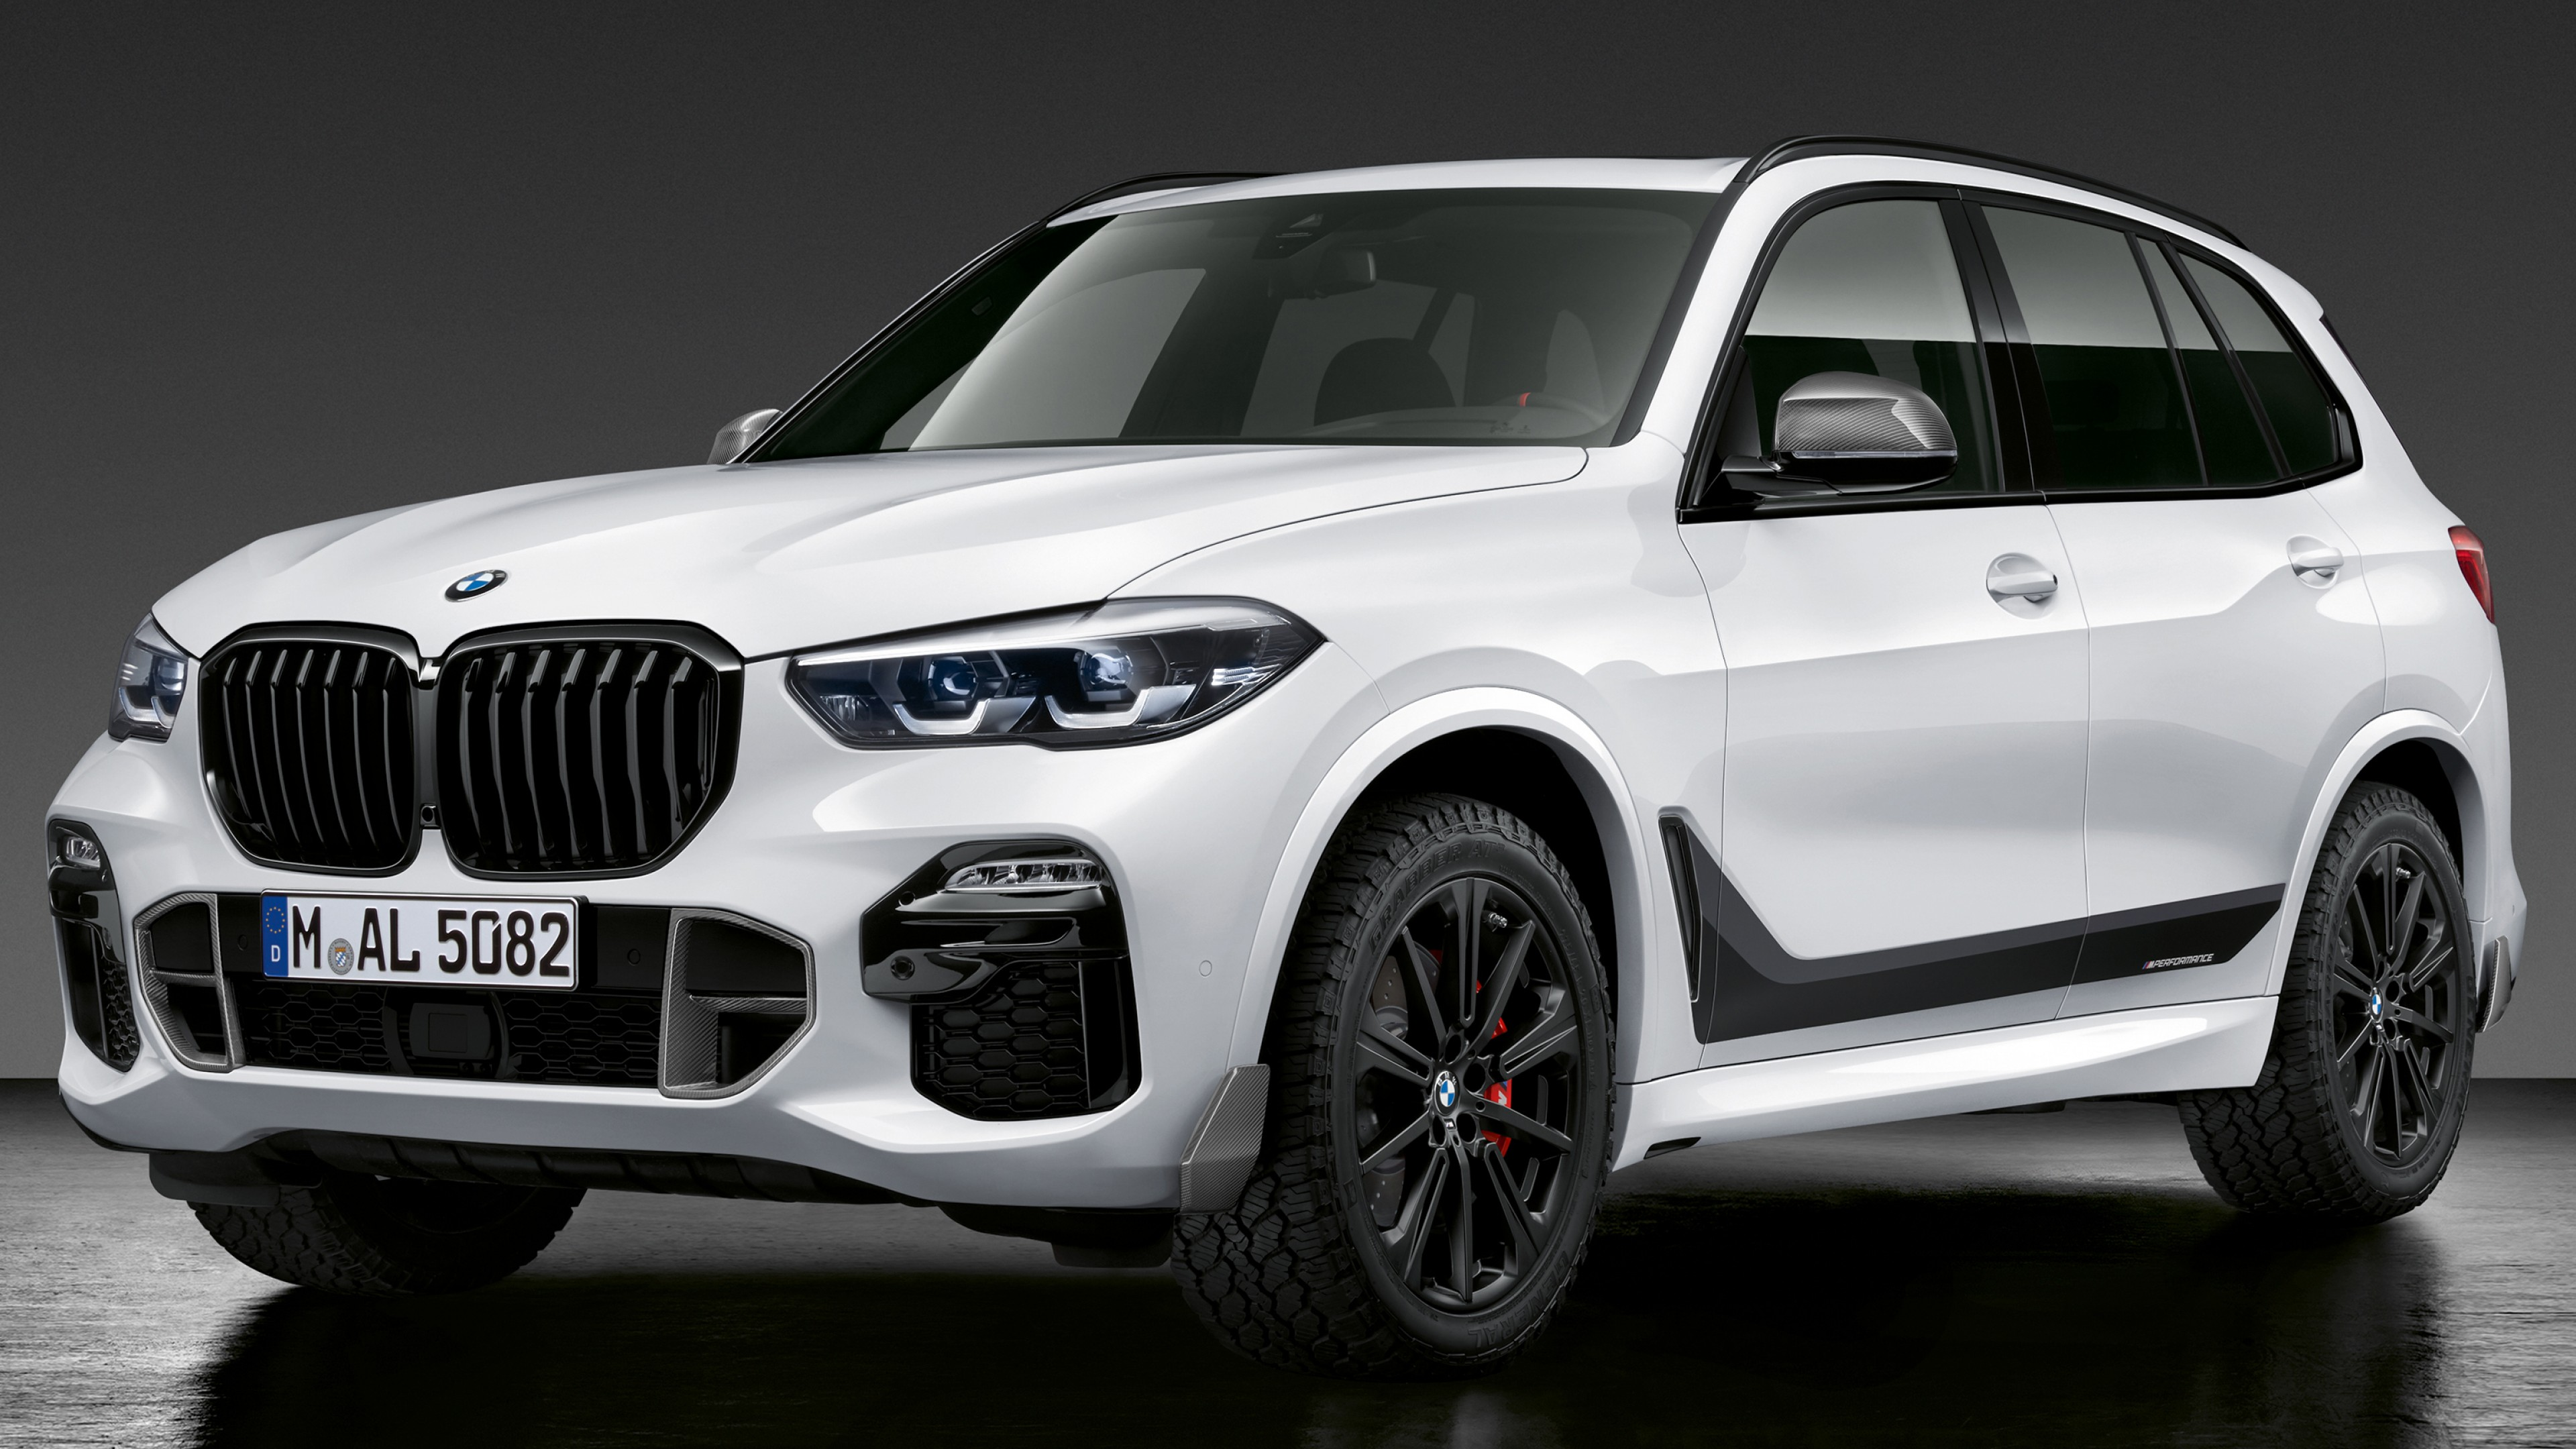 Wallpaper Bmw X5 M Suv 2019 Cars 4k Cars Bikes 20798